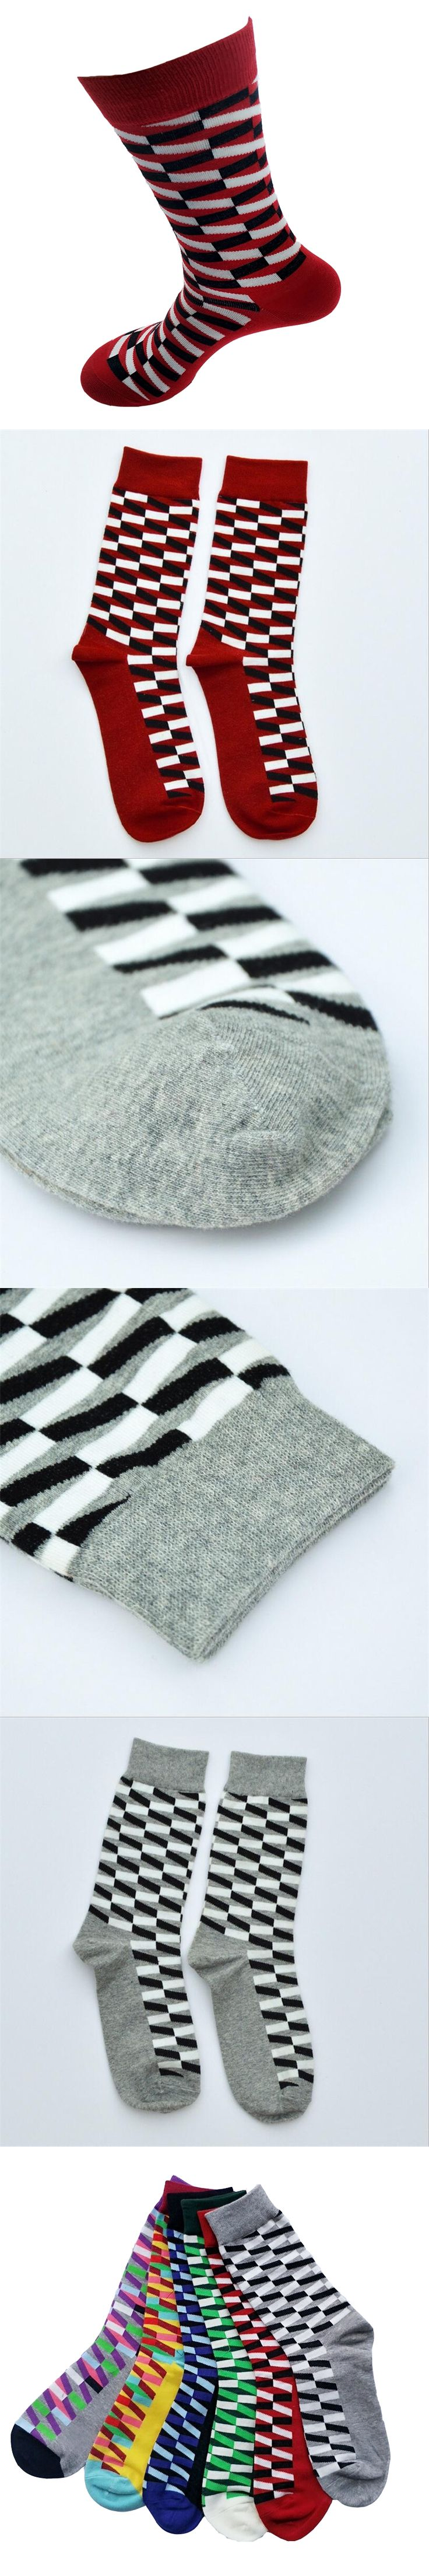 High quality socks men funny Comfortable Breathable male and men's colorful striped long happy socks men's dress sock